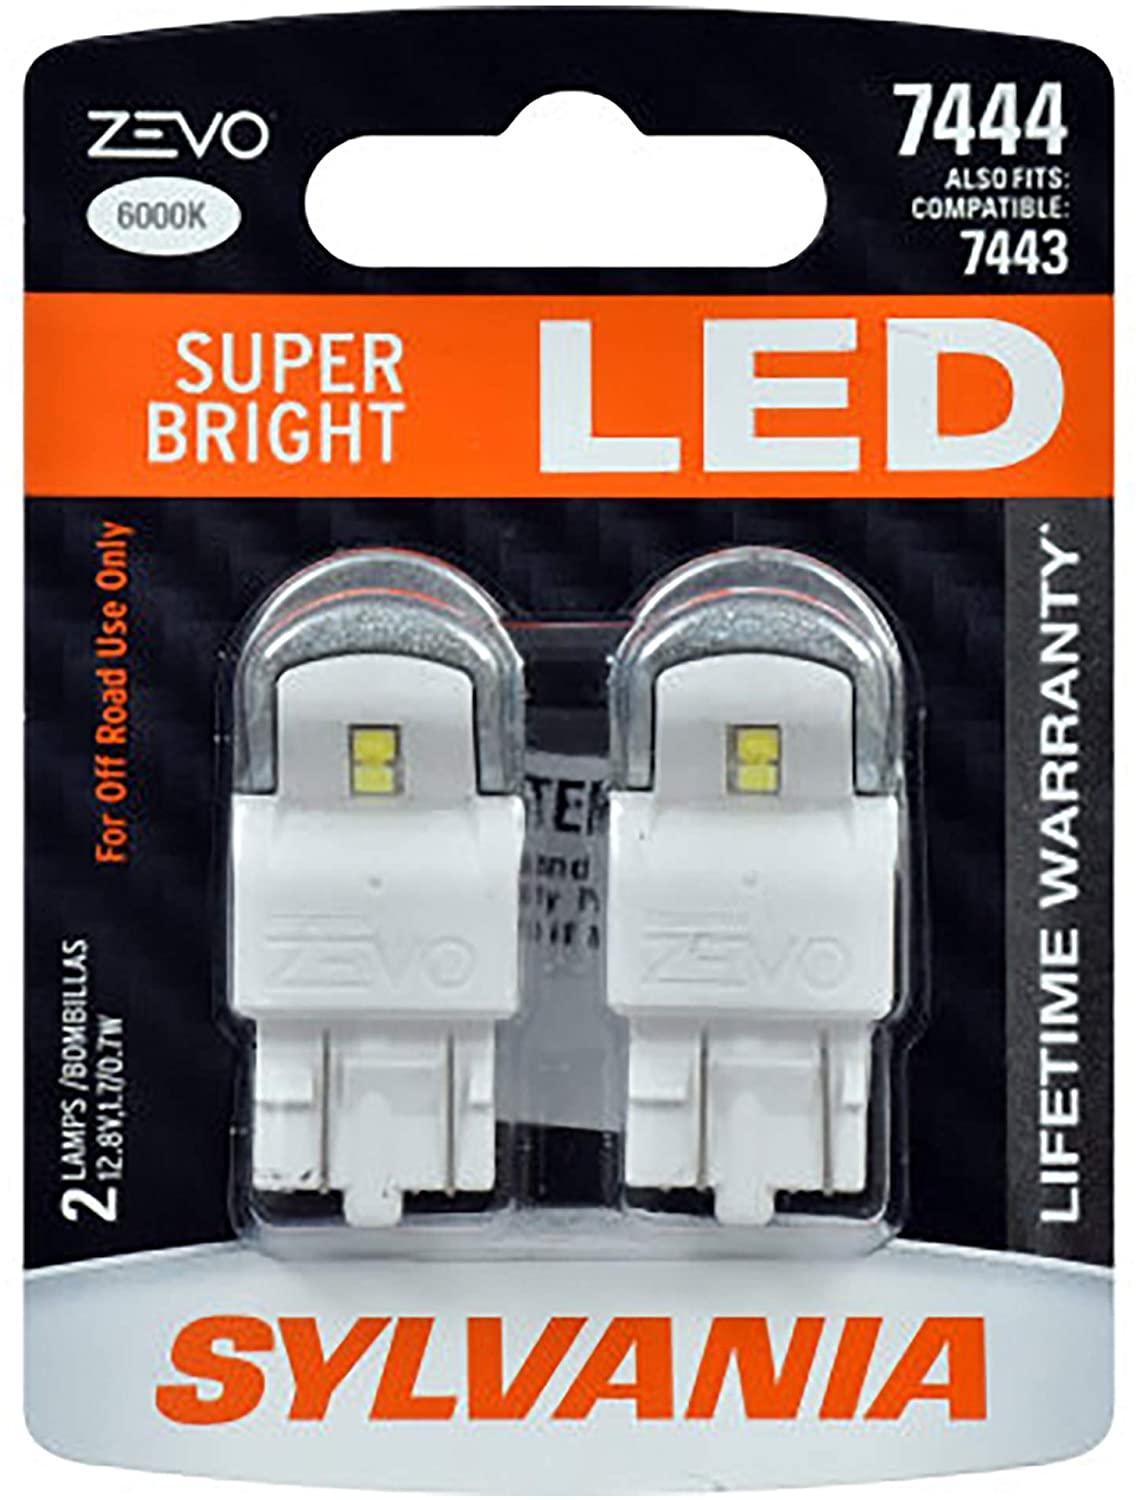 SYLVANIA - 7444 T20 ZEVO LED White Bulb - Bright LED Bulb, Ideal for Daytime Running Lights (DRL) and Back-Up/Reverse Lights (Contains 2 Bulbs)